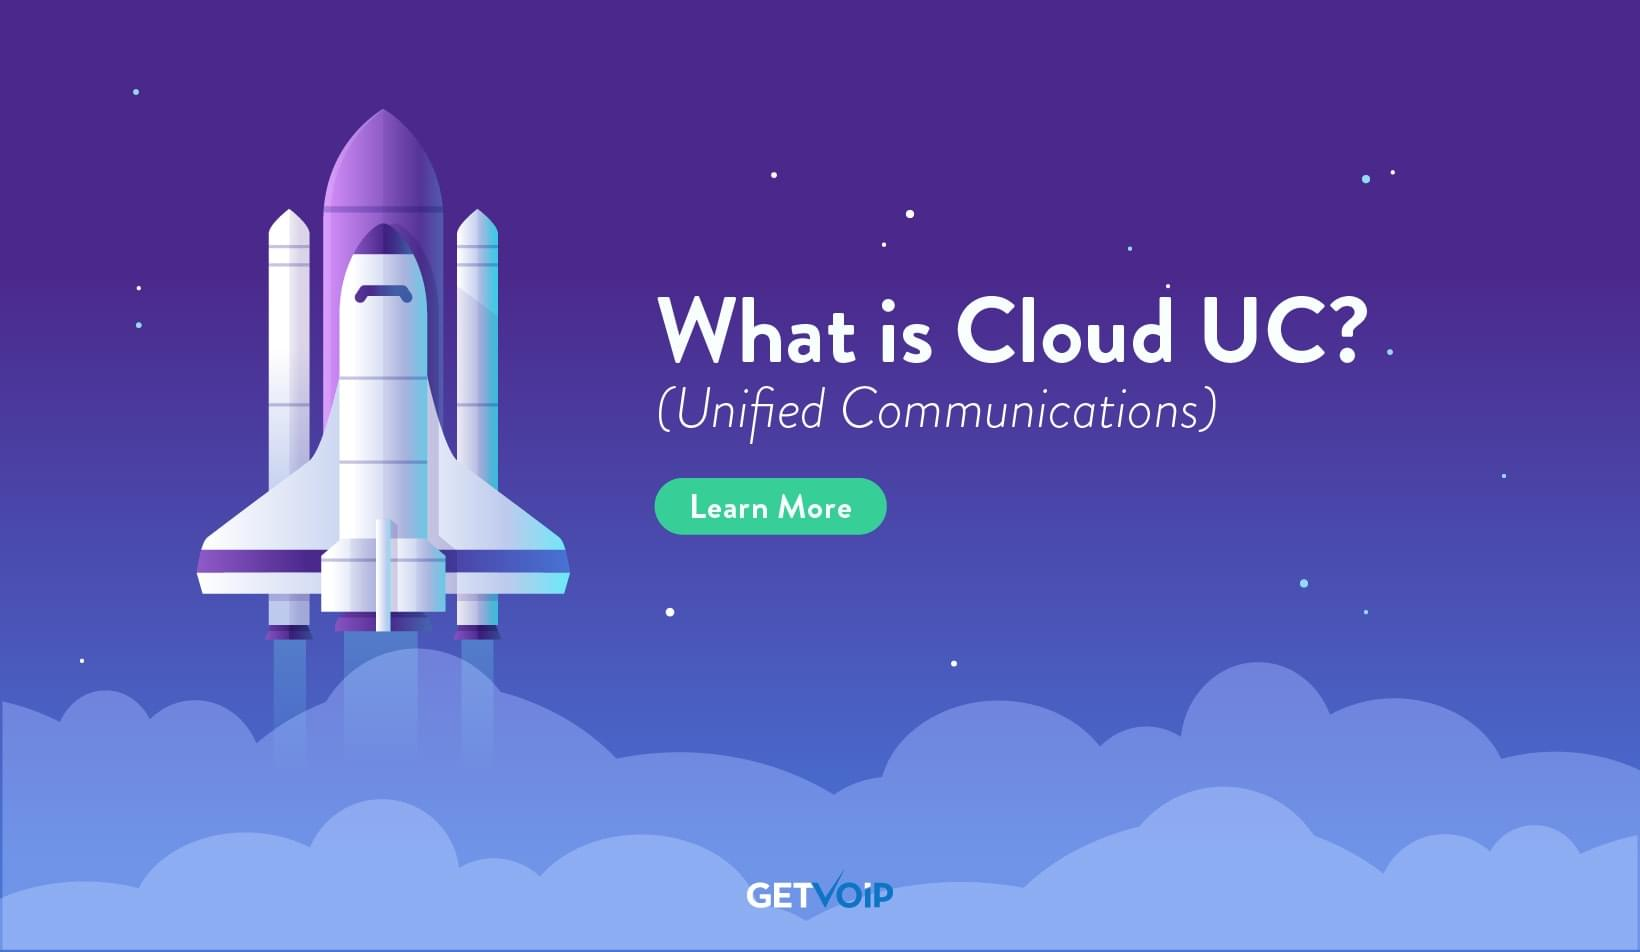 What is Cloud UC?